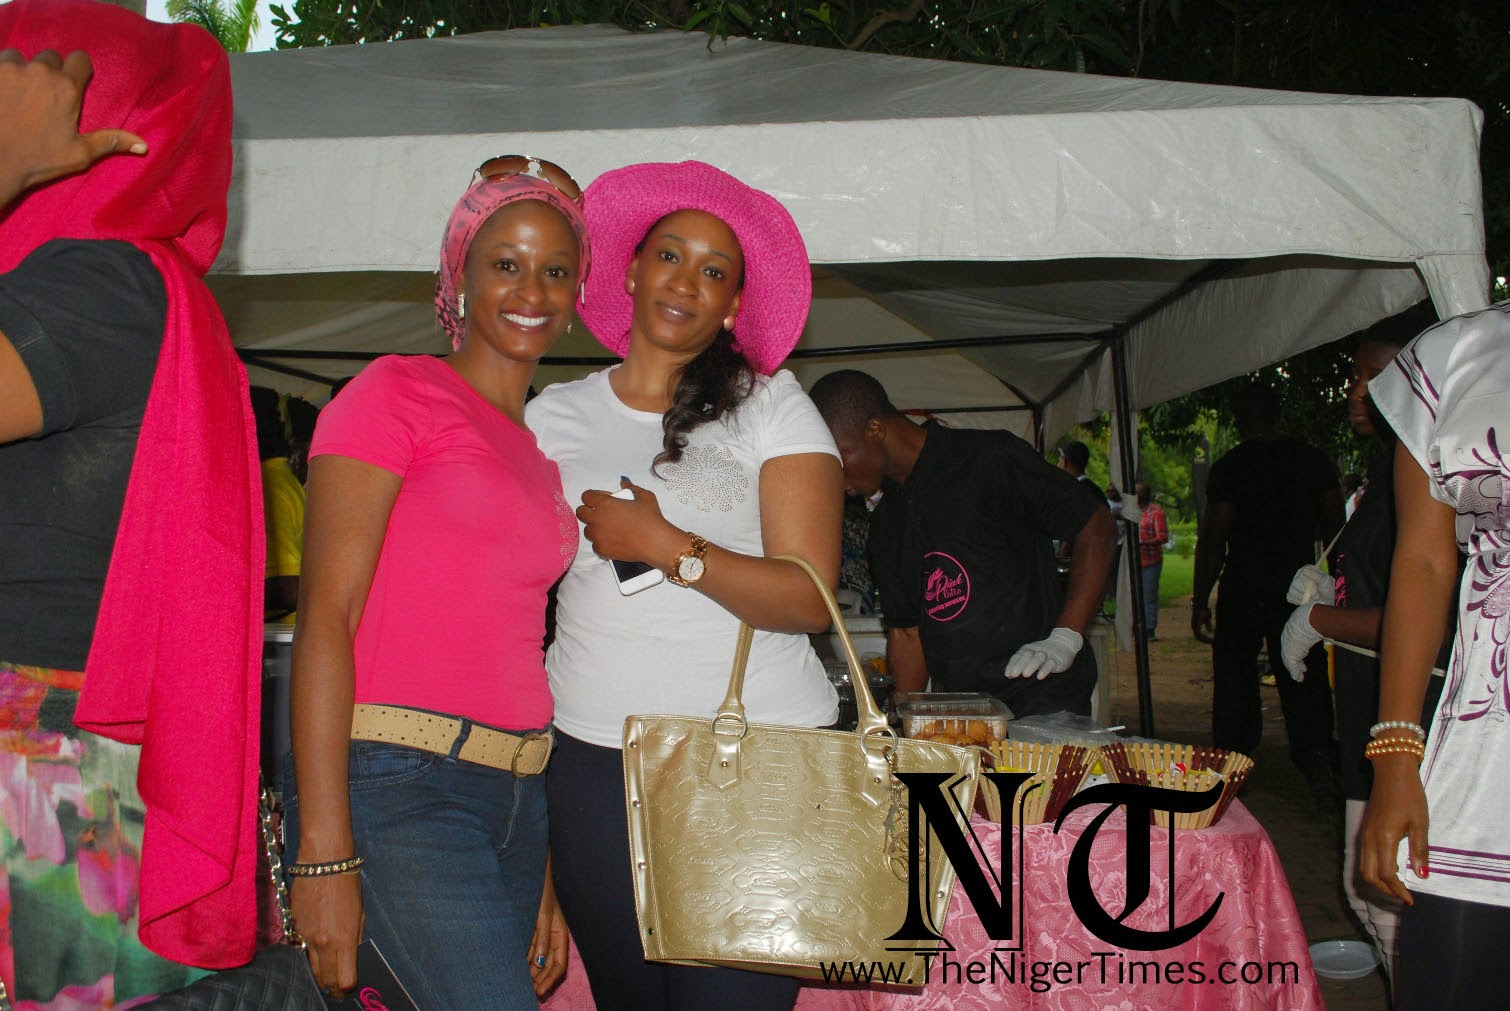 the-picnic-abuja-august-2014-the-niger-times-21.jpg